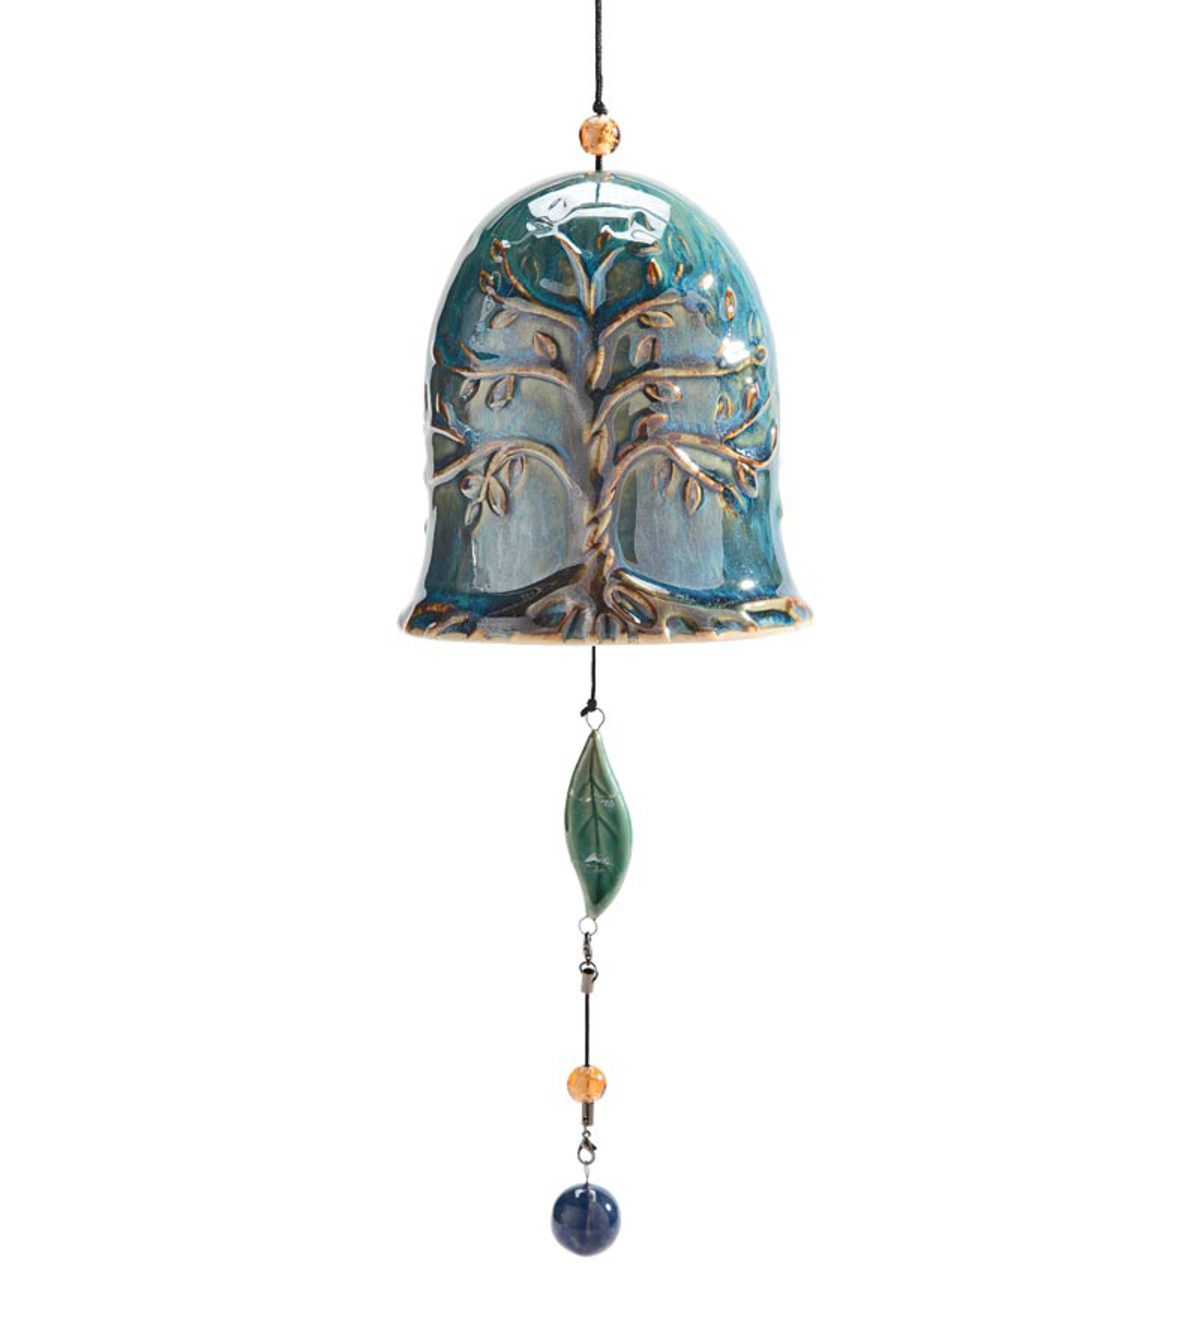 Whispering Bell Wind Chime - Blue Tree Of Life Bell